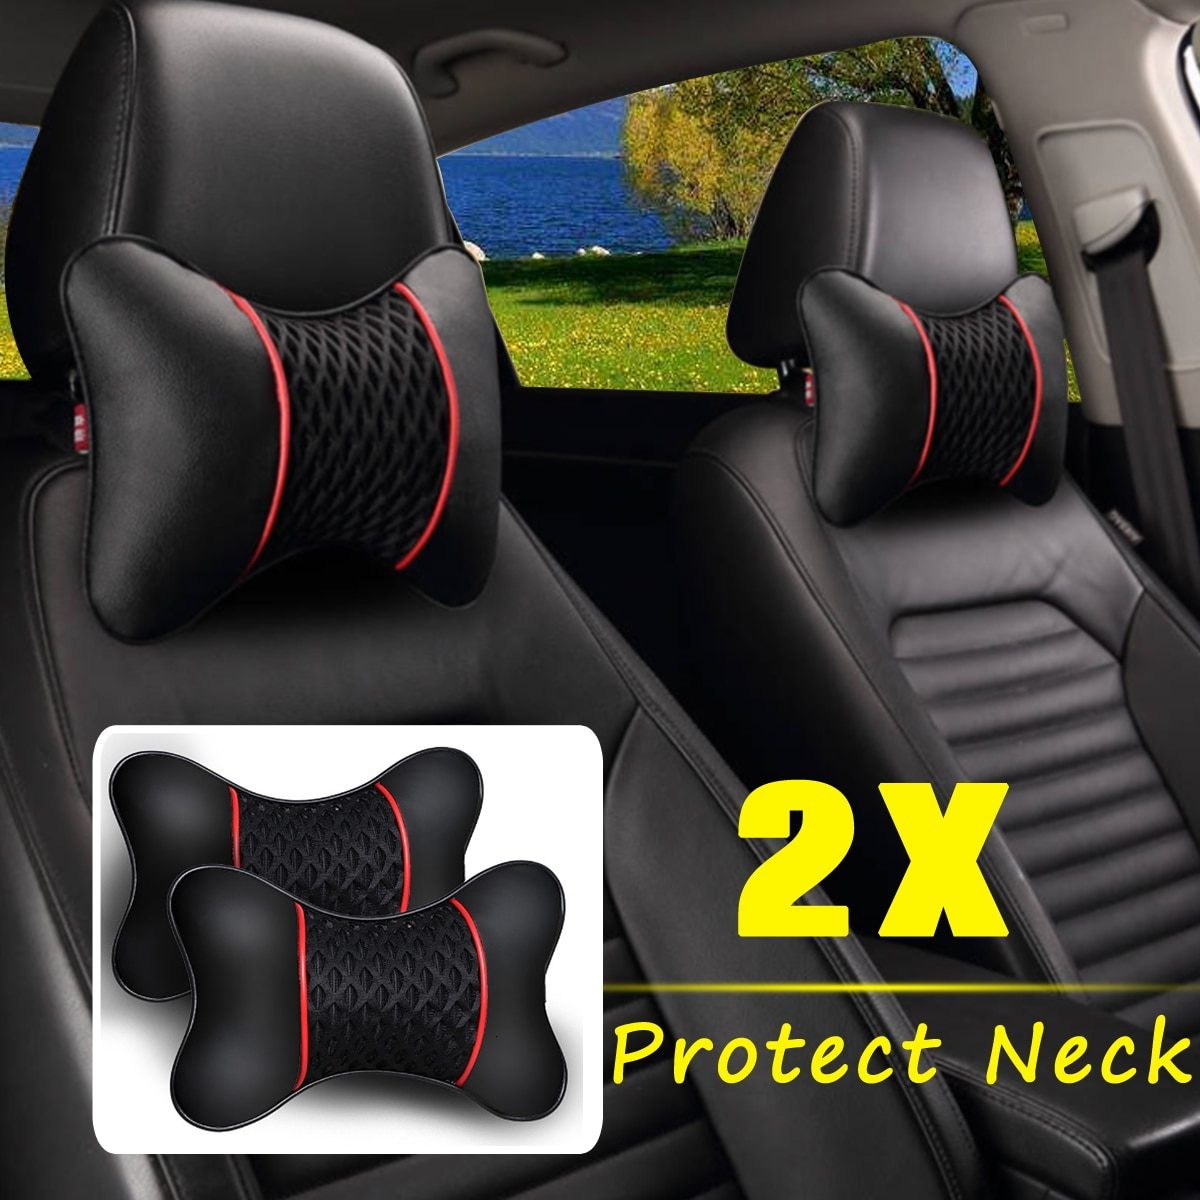 2Pcs PU Leather Knitted Car Pillows Headrest Neck Rest Cushion Support Seat Accessories Auto Black Safety Pillow Universal Decor